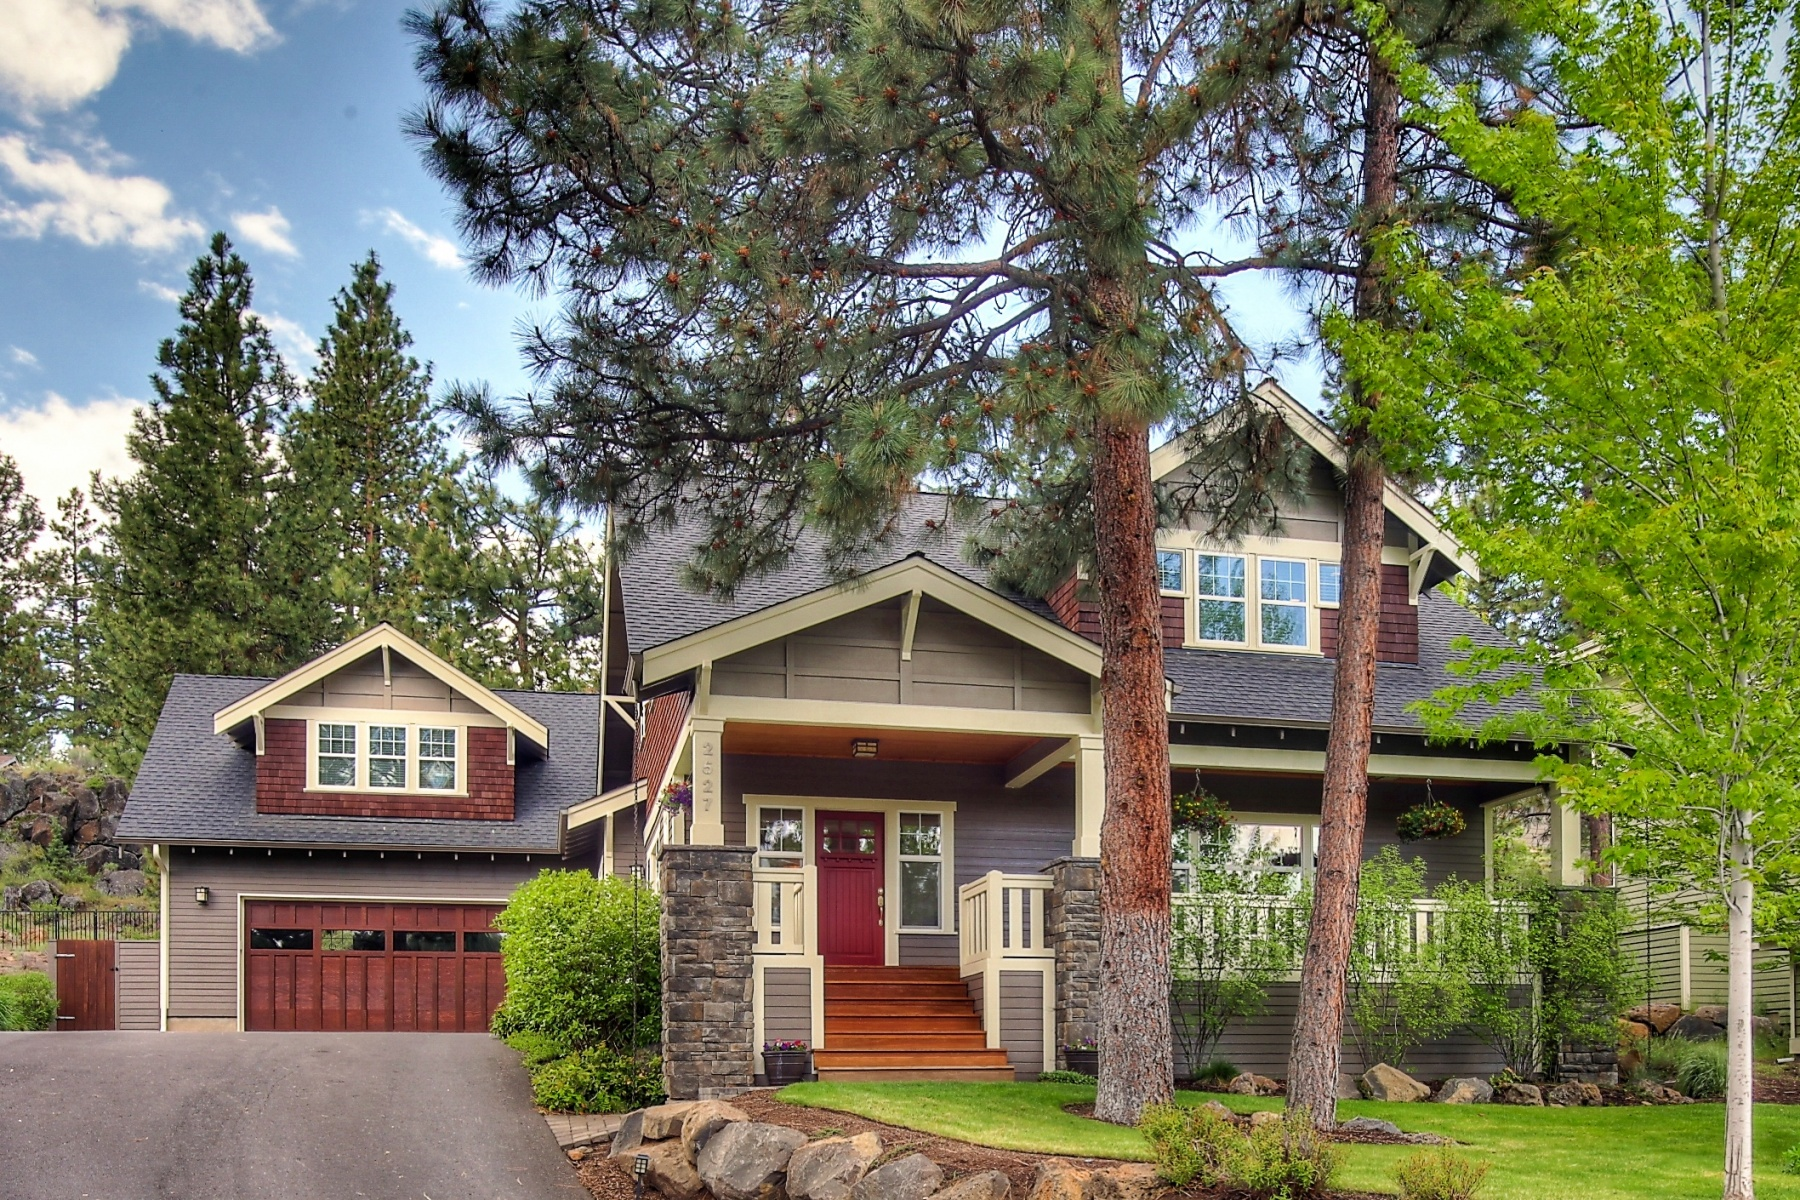 Single Family Home for Sale at Beautifully Remodeled Craftsman 2527 NW Brickyard St Bend, Oregon, 97703 United States